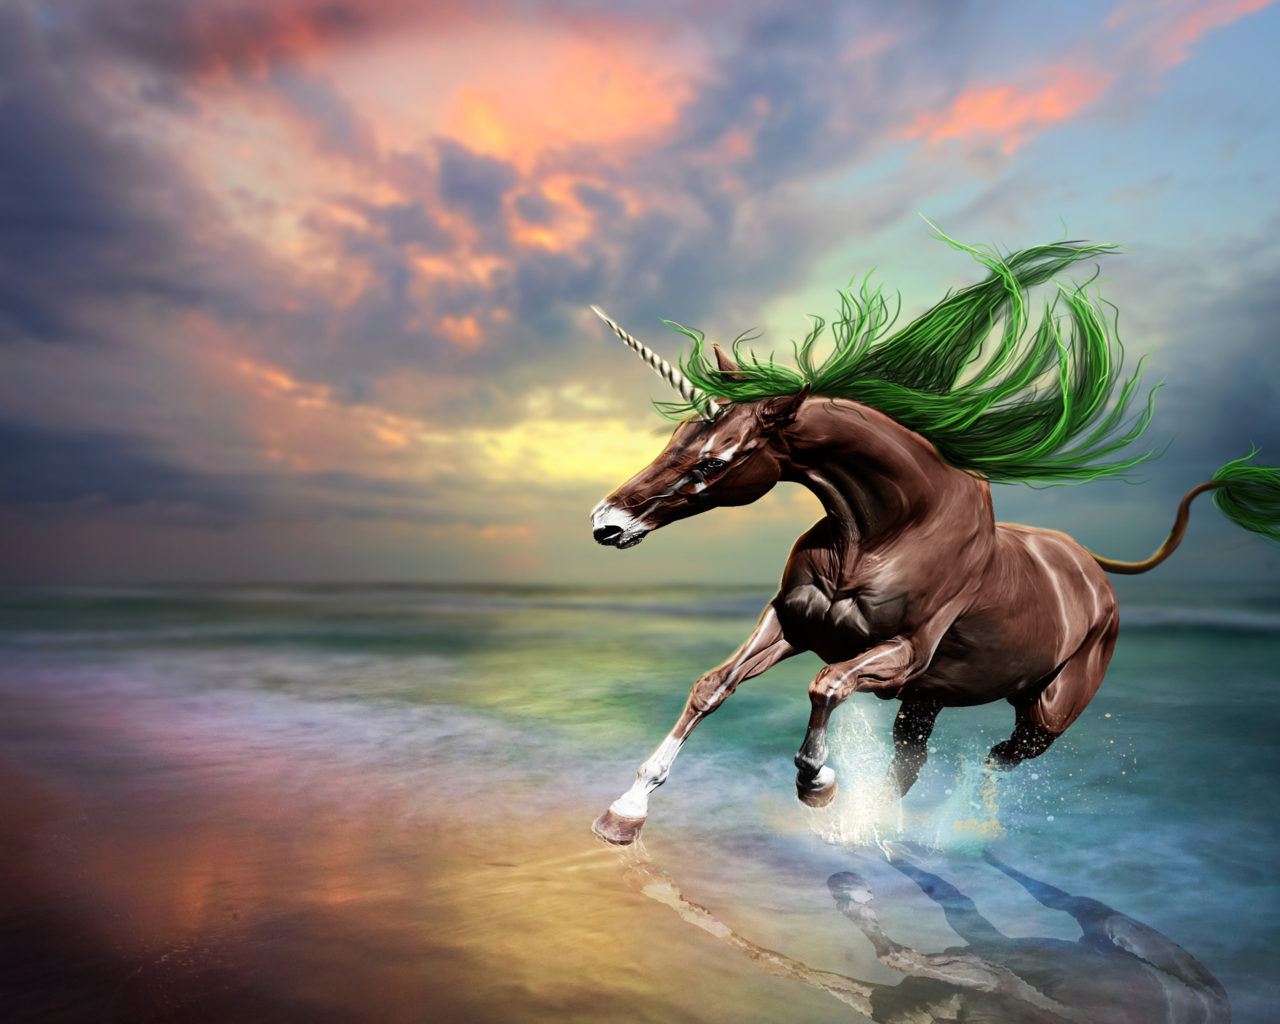 Lock Screen Wallpaper Cute Brown Horse Unicorn Art Digital Imaging Beach Sunset